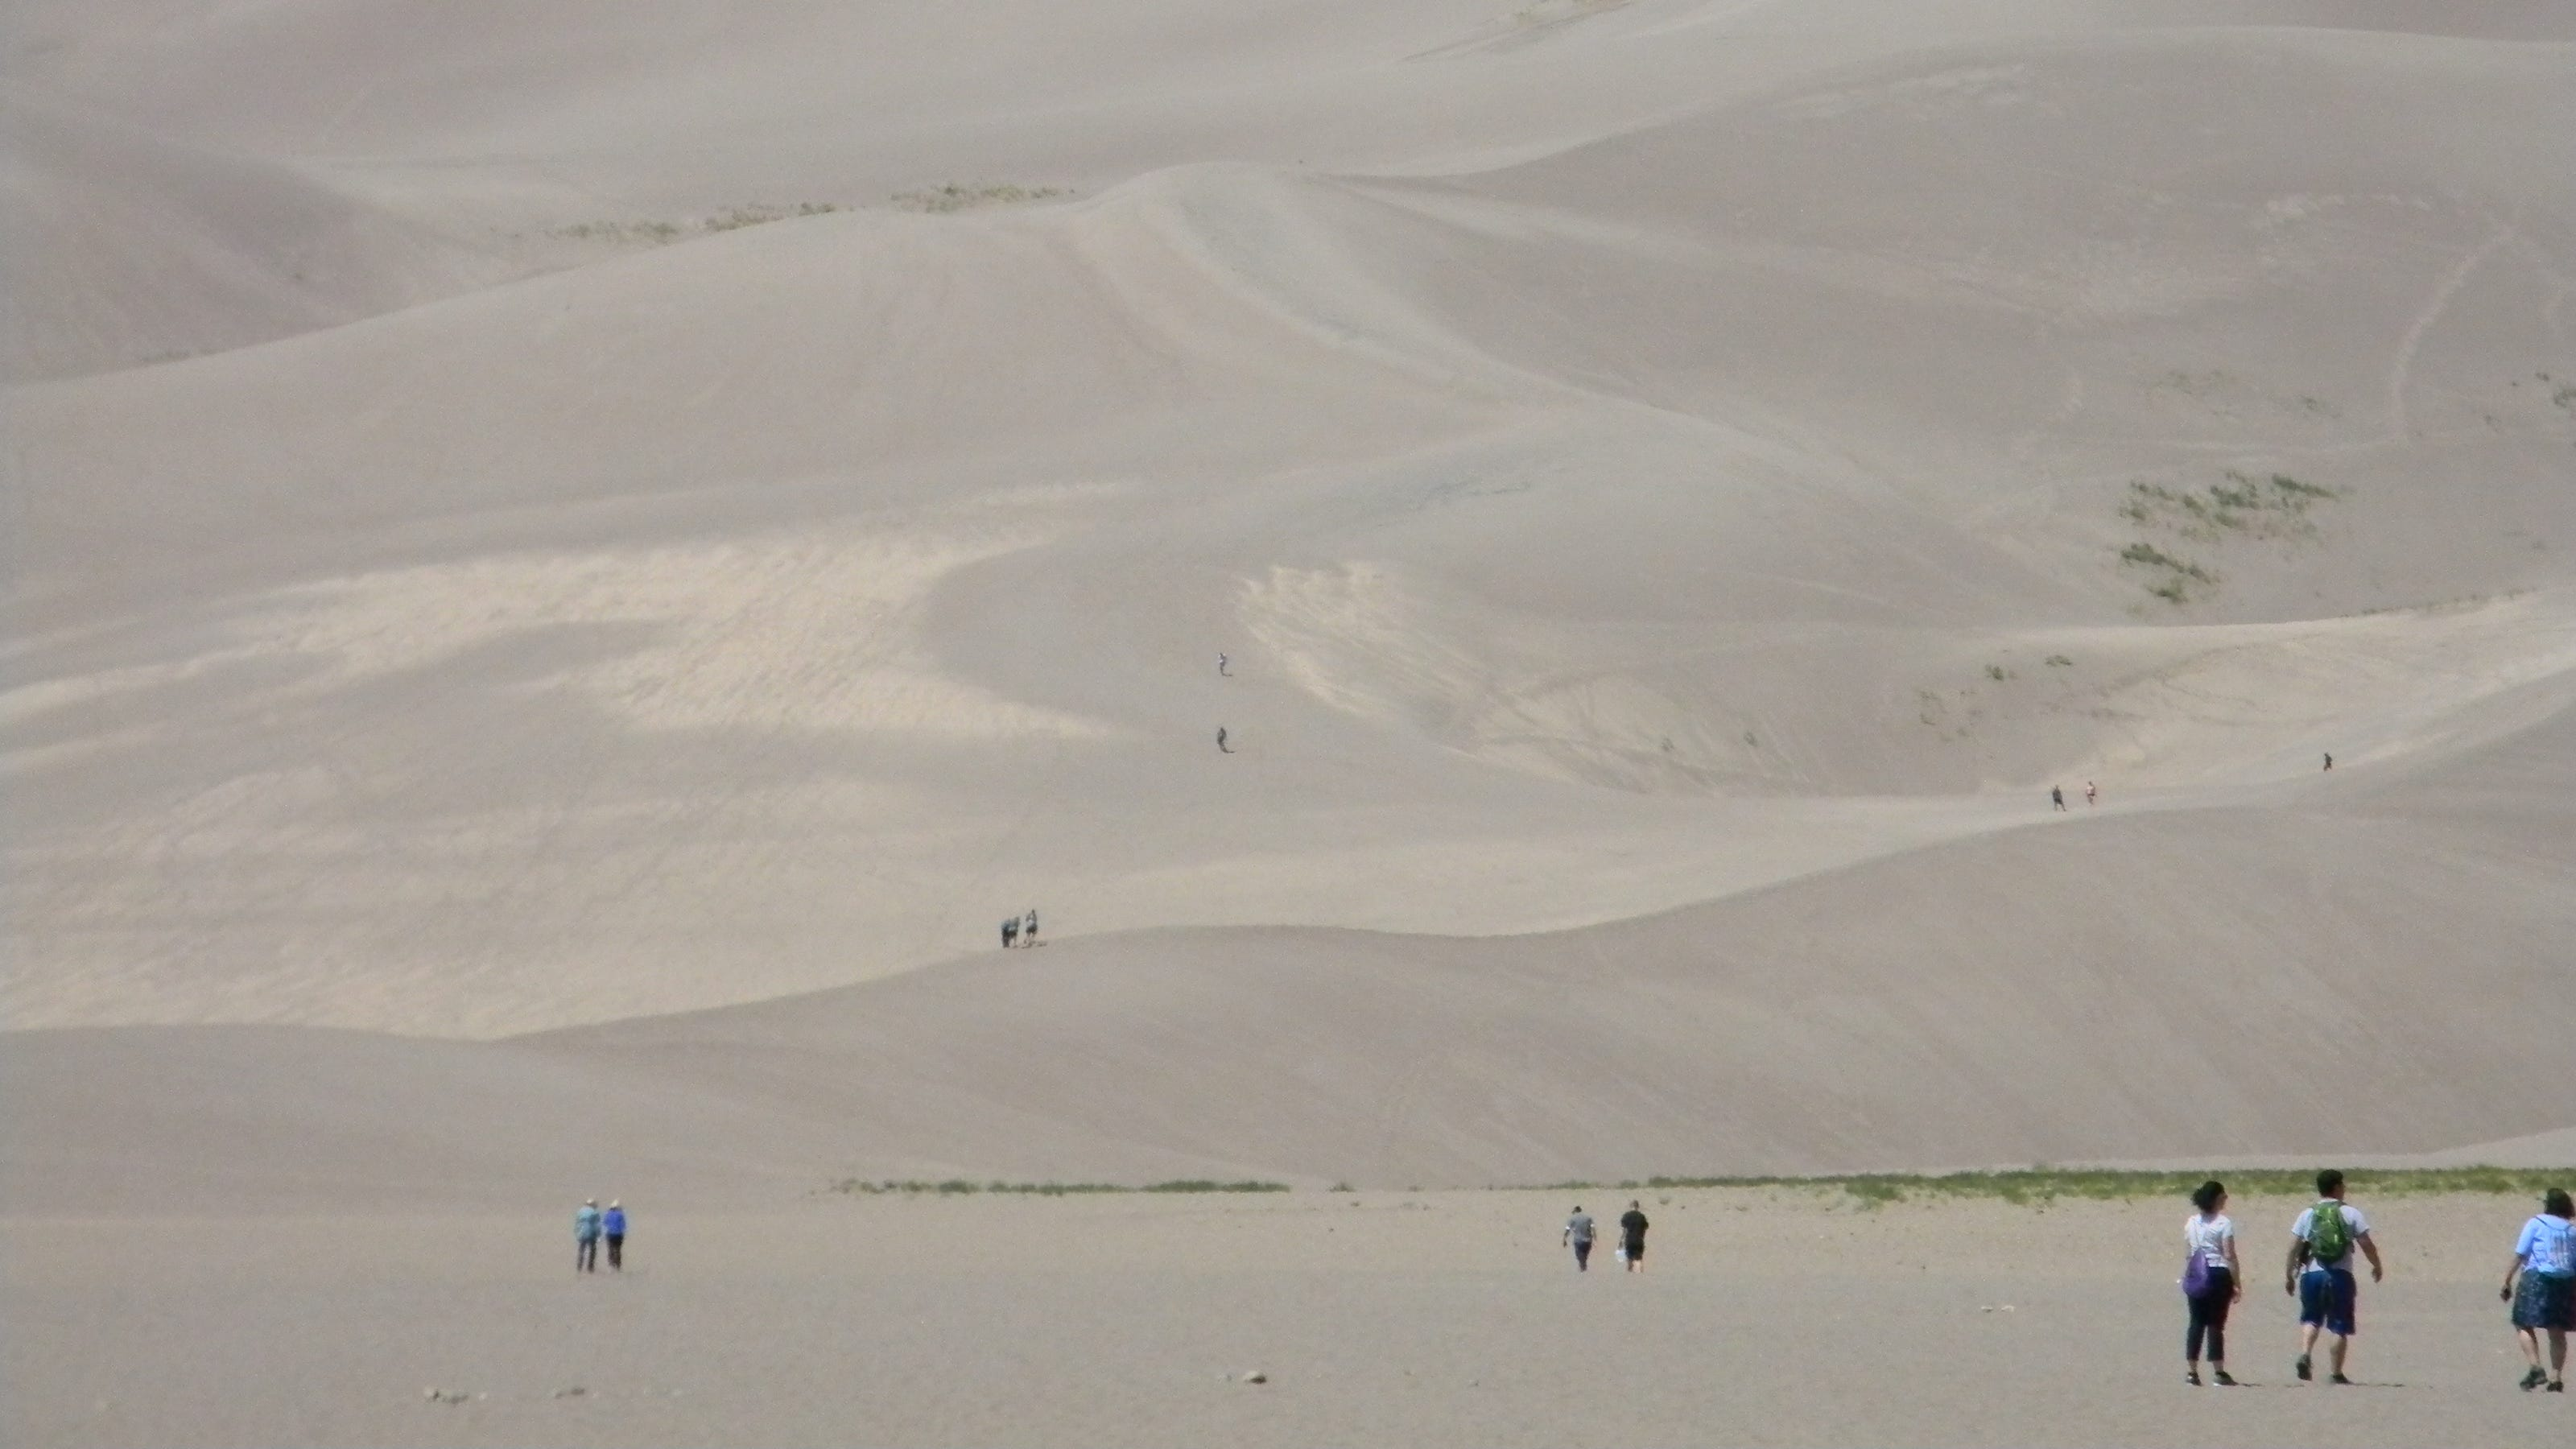 Colorado Sand Dunes Give New Meaning To Great